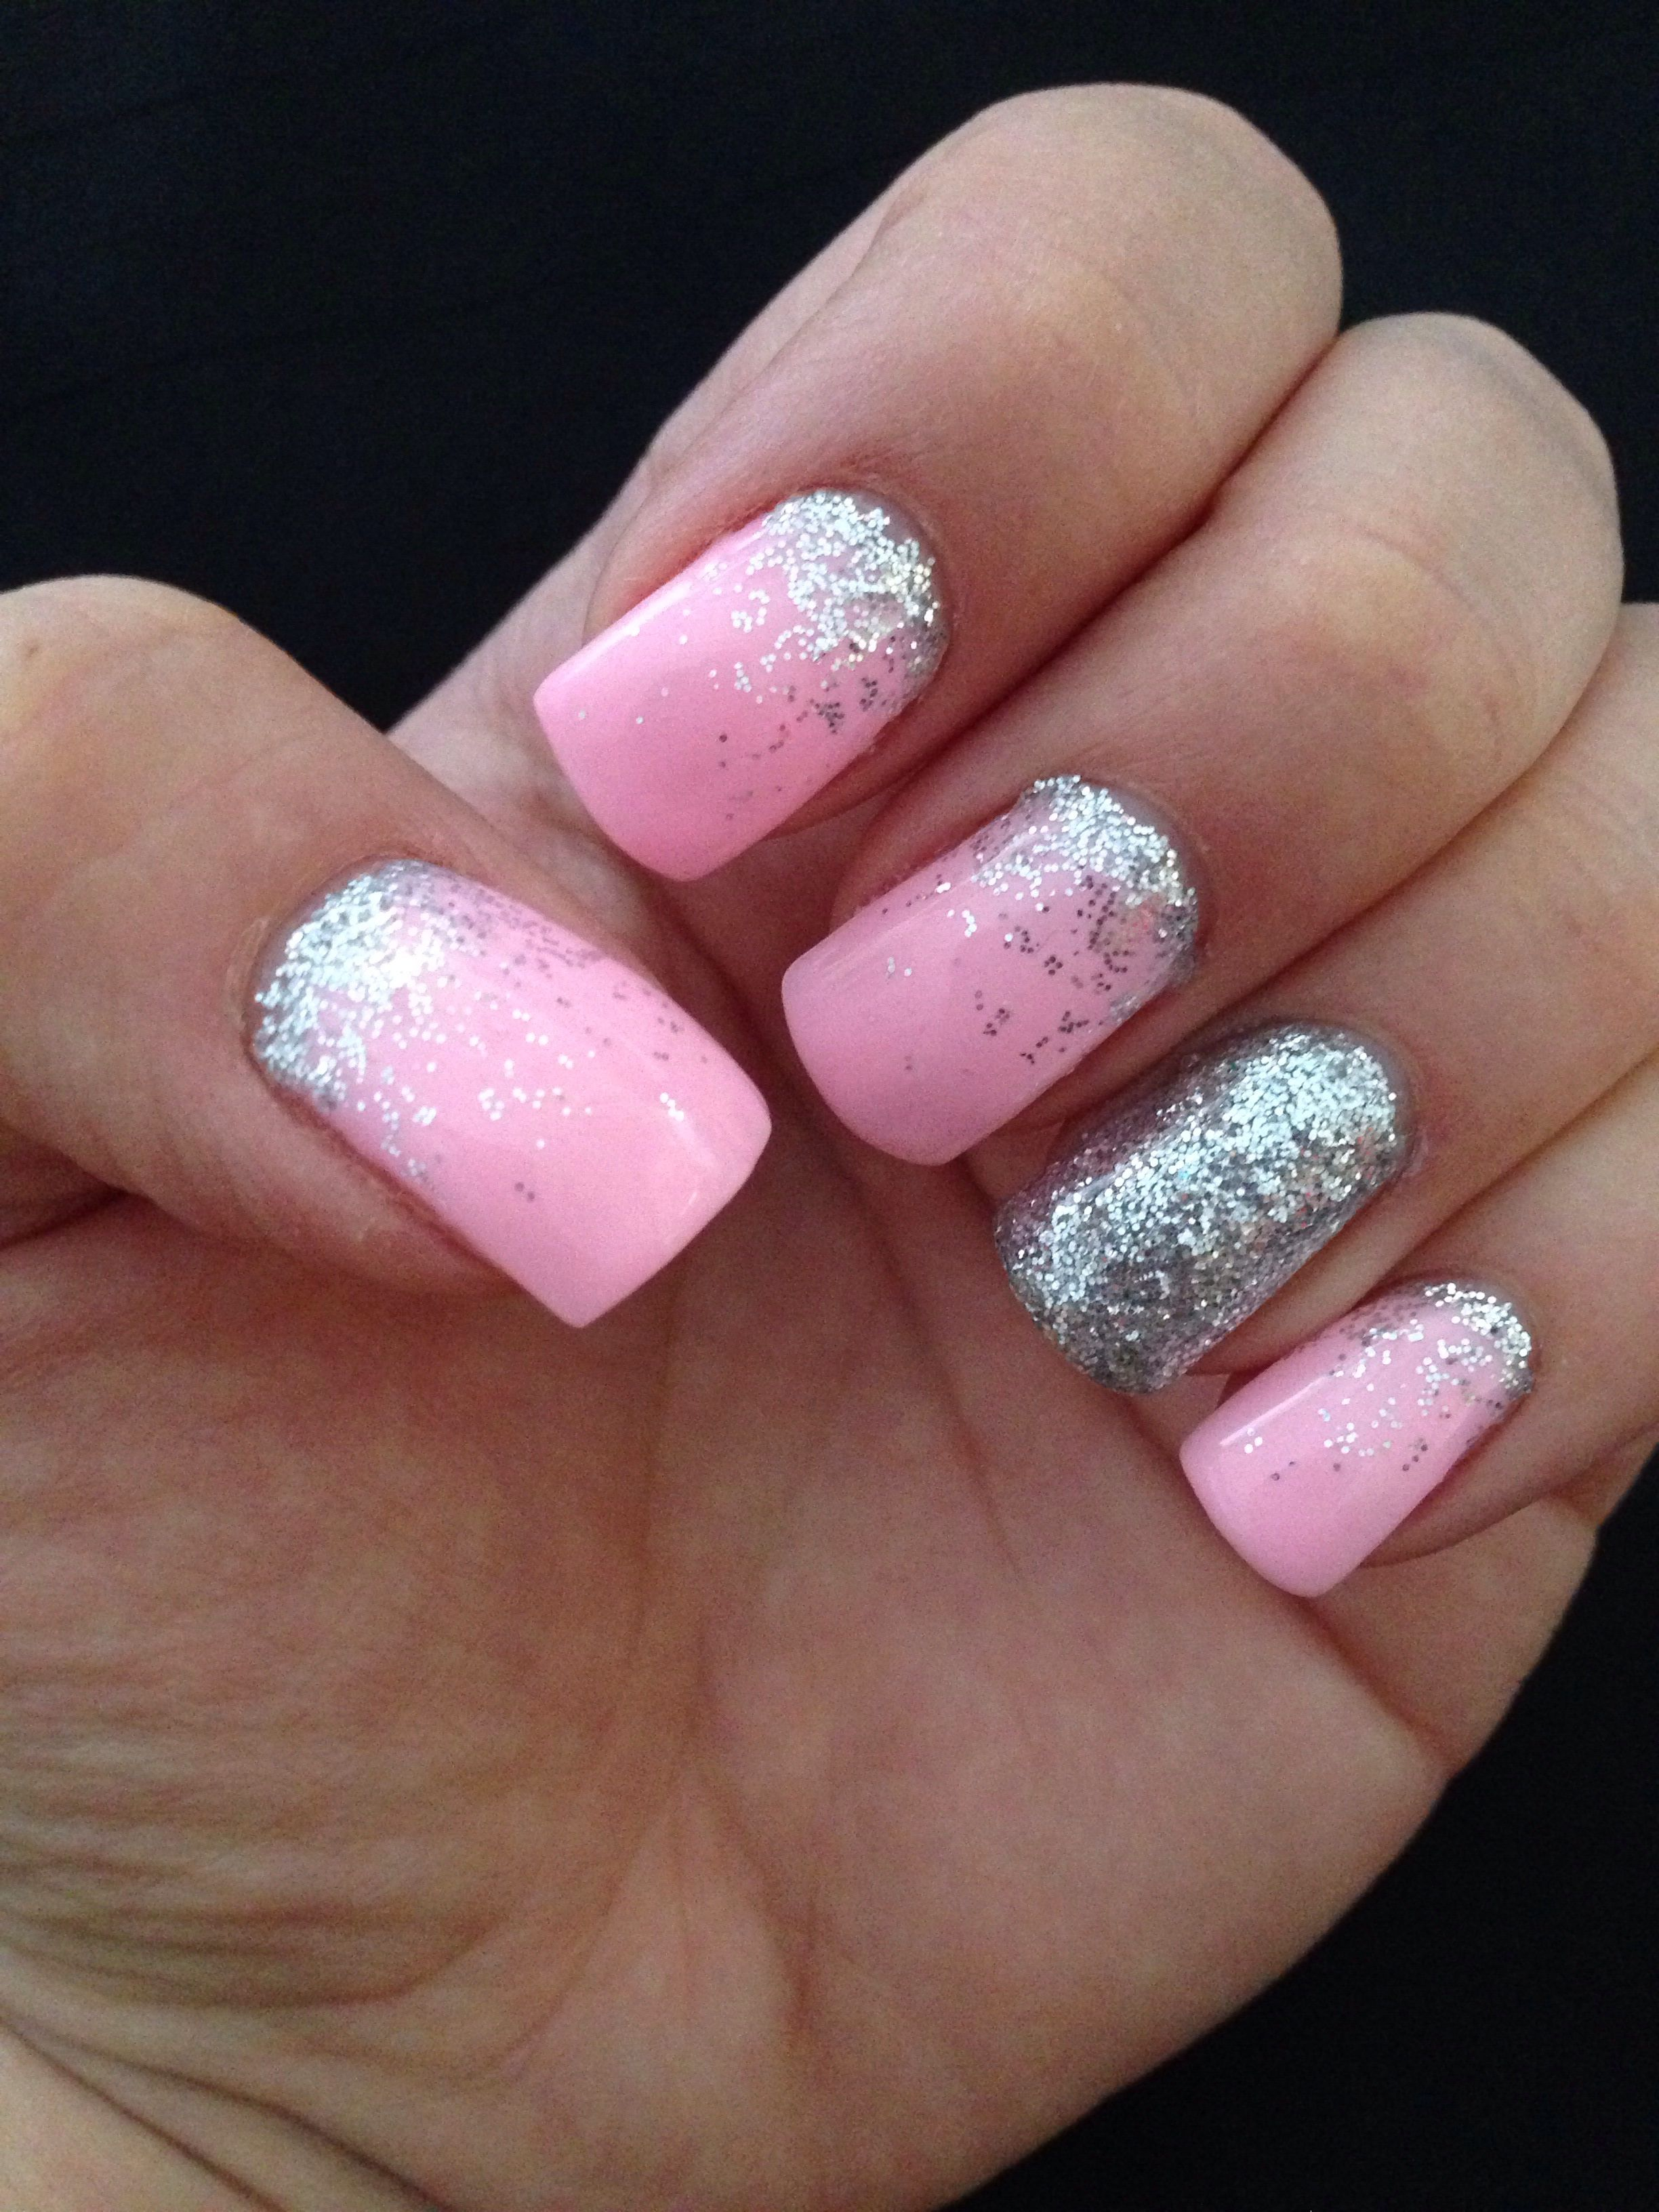 Waterfall Gel Nails Don T Like The Pink But Love The Design Idea Gel Nail Designs Pink Manicure Nail Designs Glitter